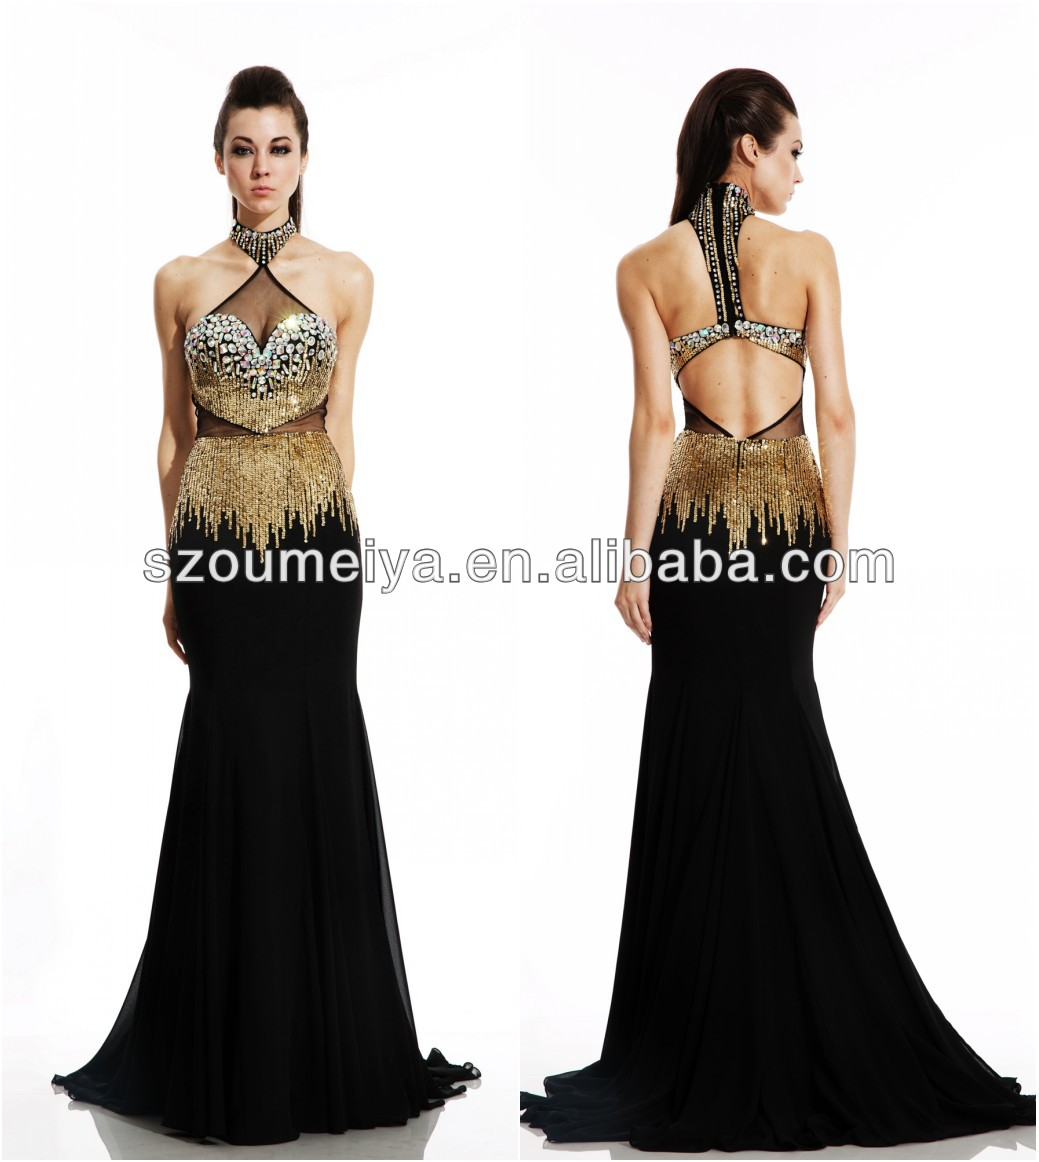 Short black and gold prom dresses 2014